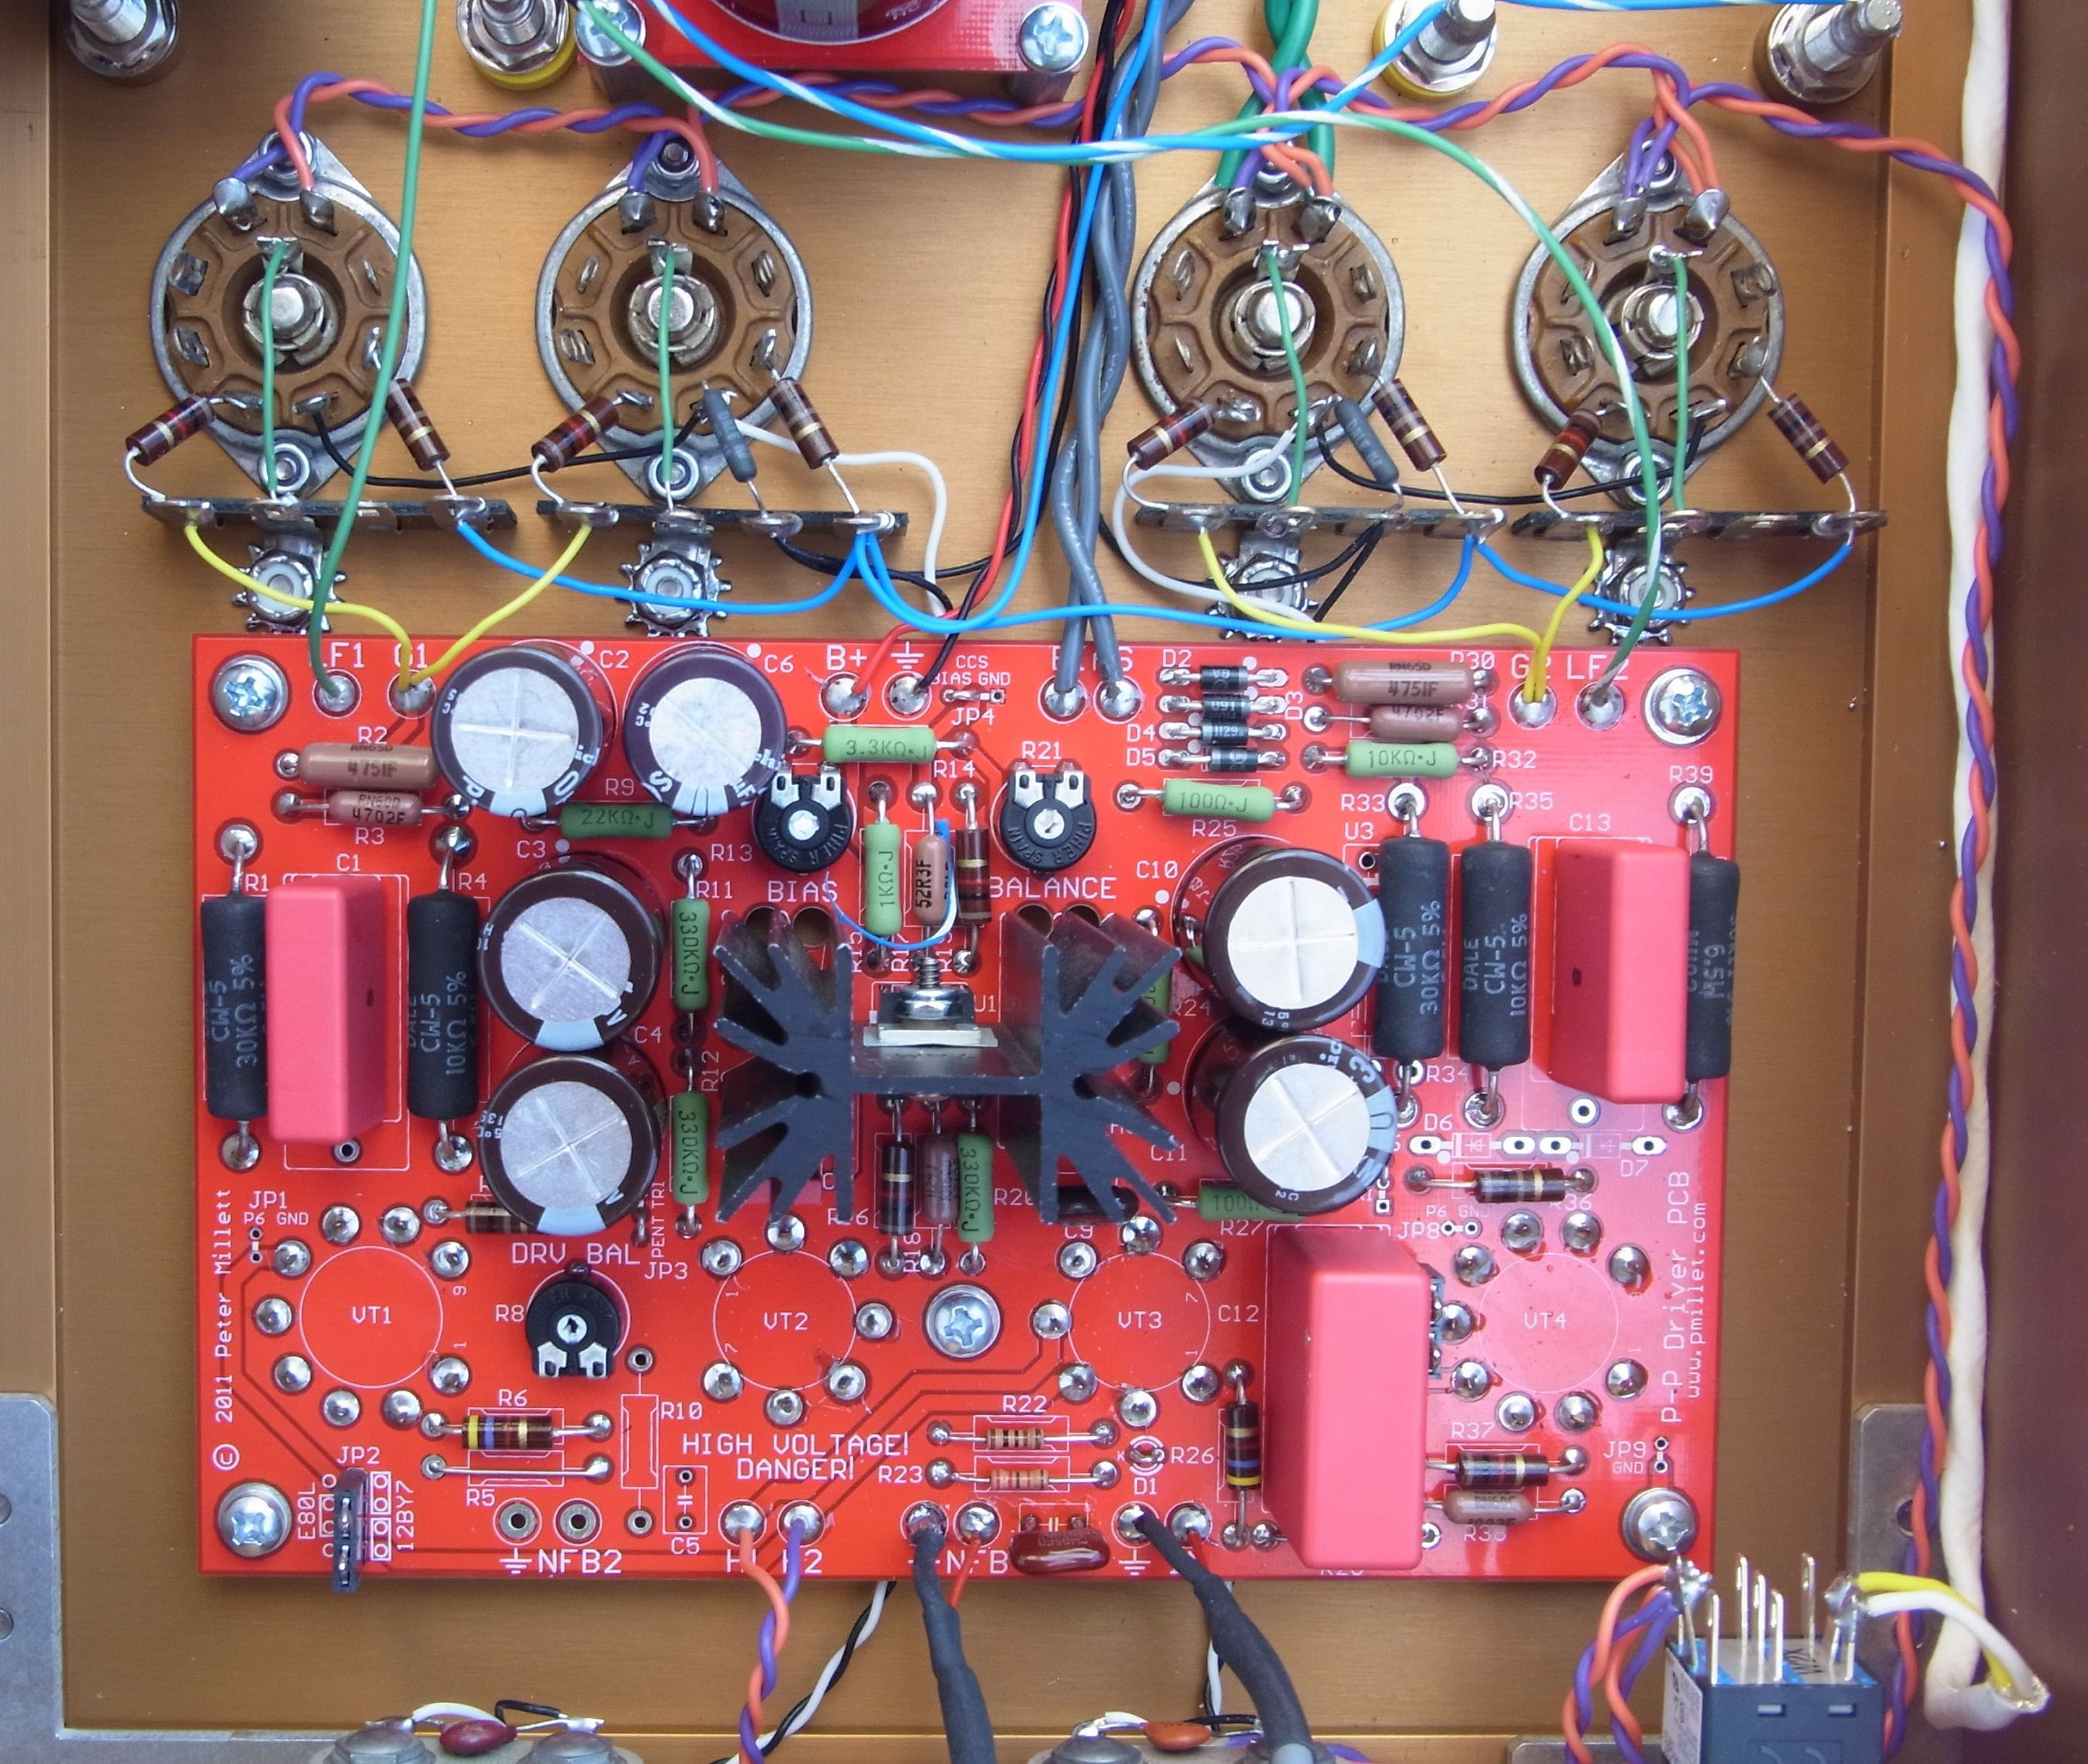 807 push pull amp 1k carbon comps mounted between the tube sockets and terminal strips which are then connected to the driver board wires as shown below